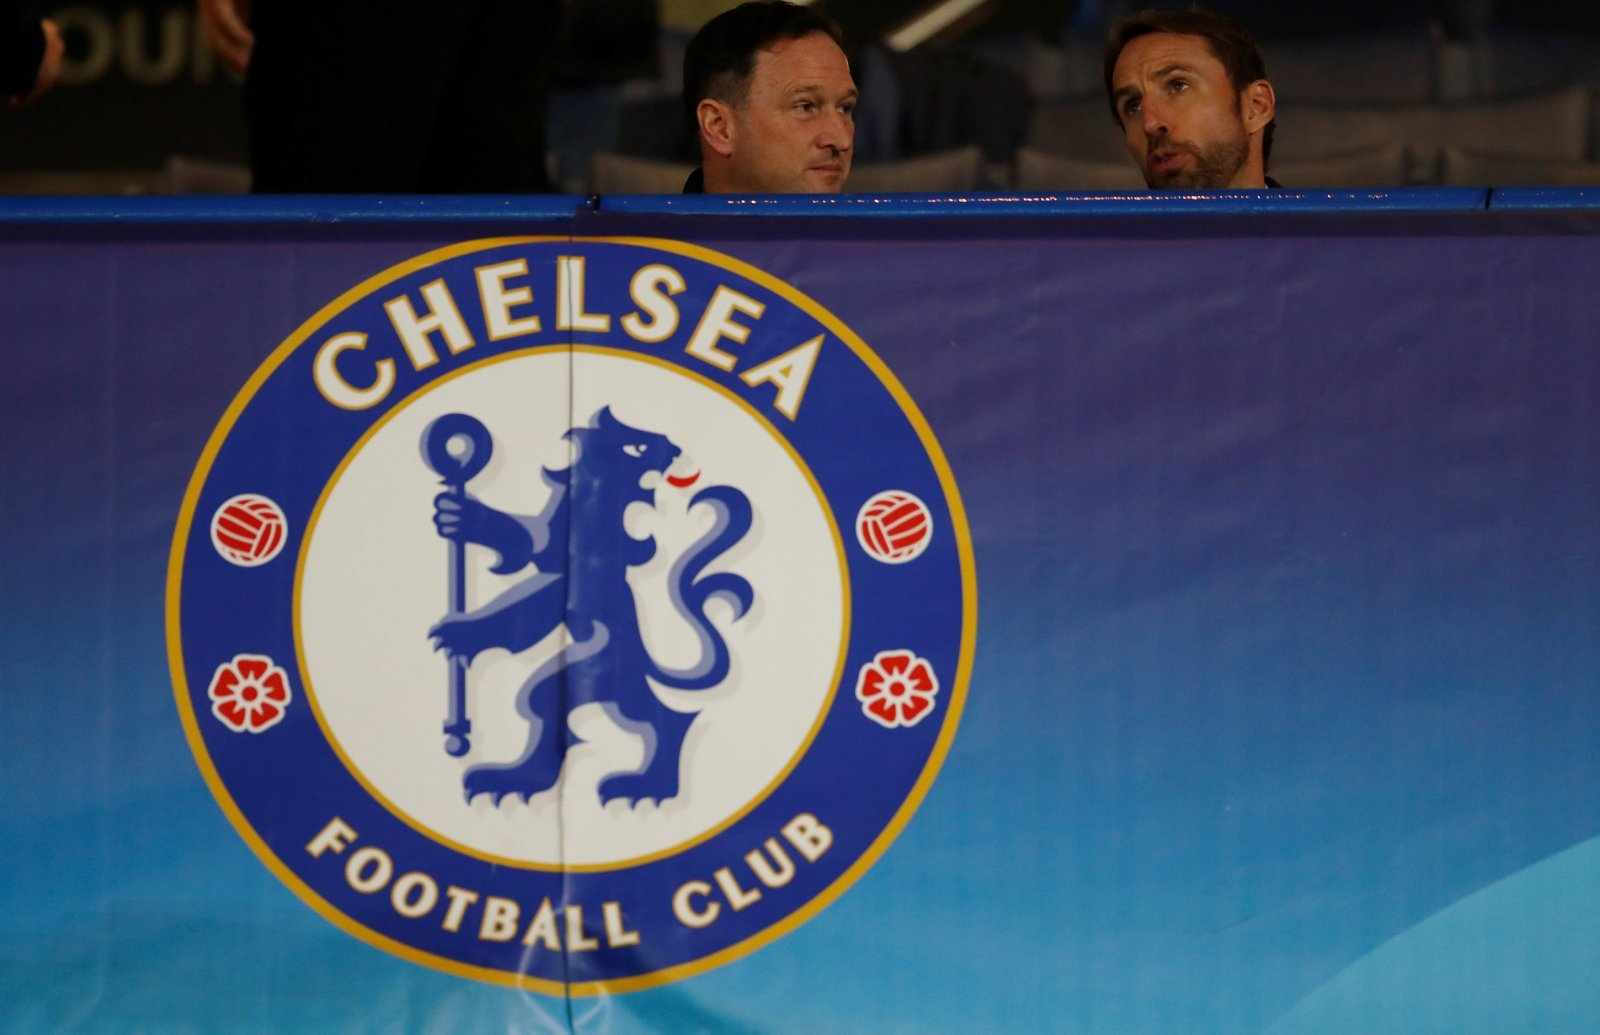 There are certainly risks in potentially bringing Steve Holland to Chelsea